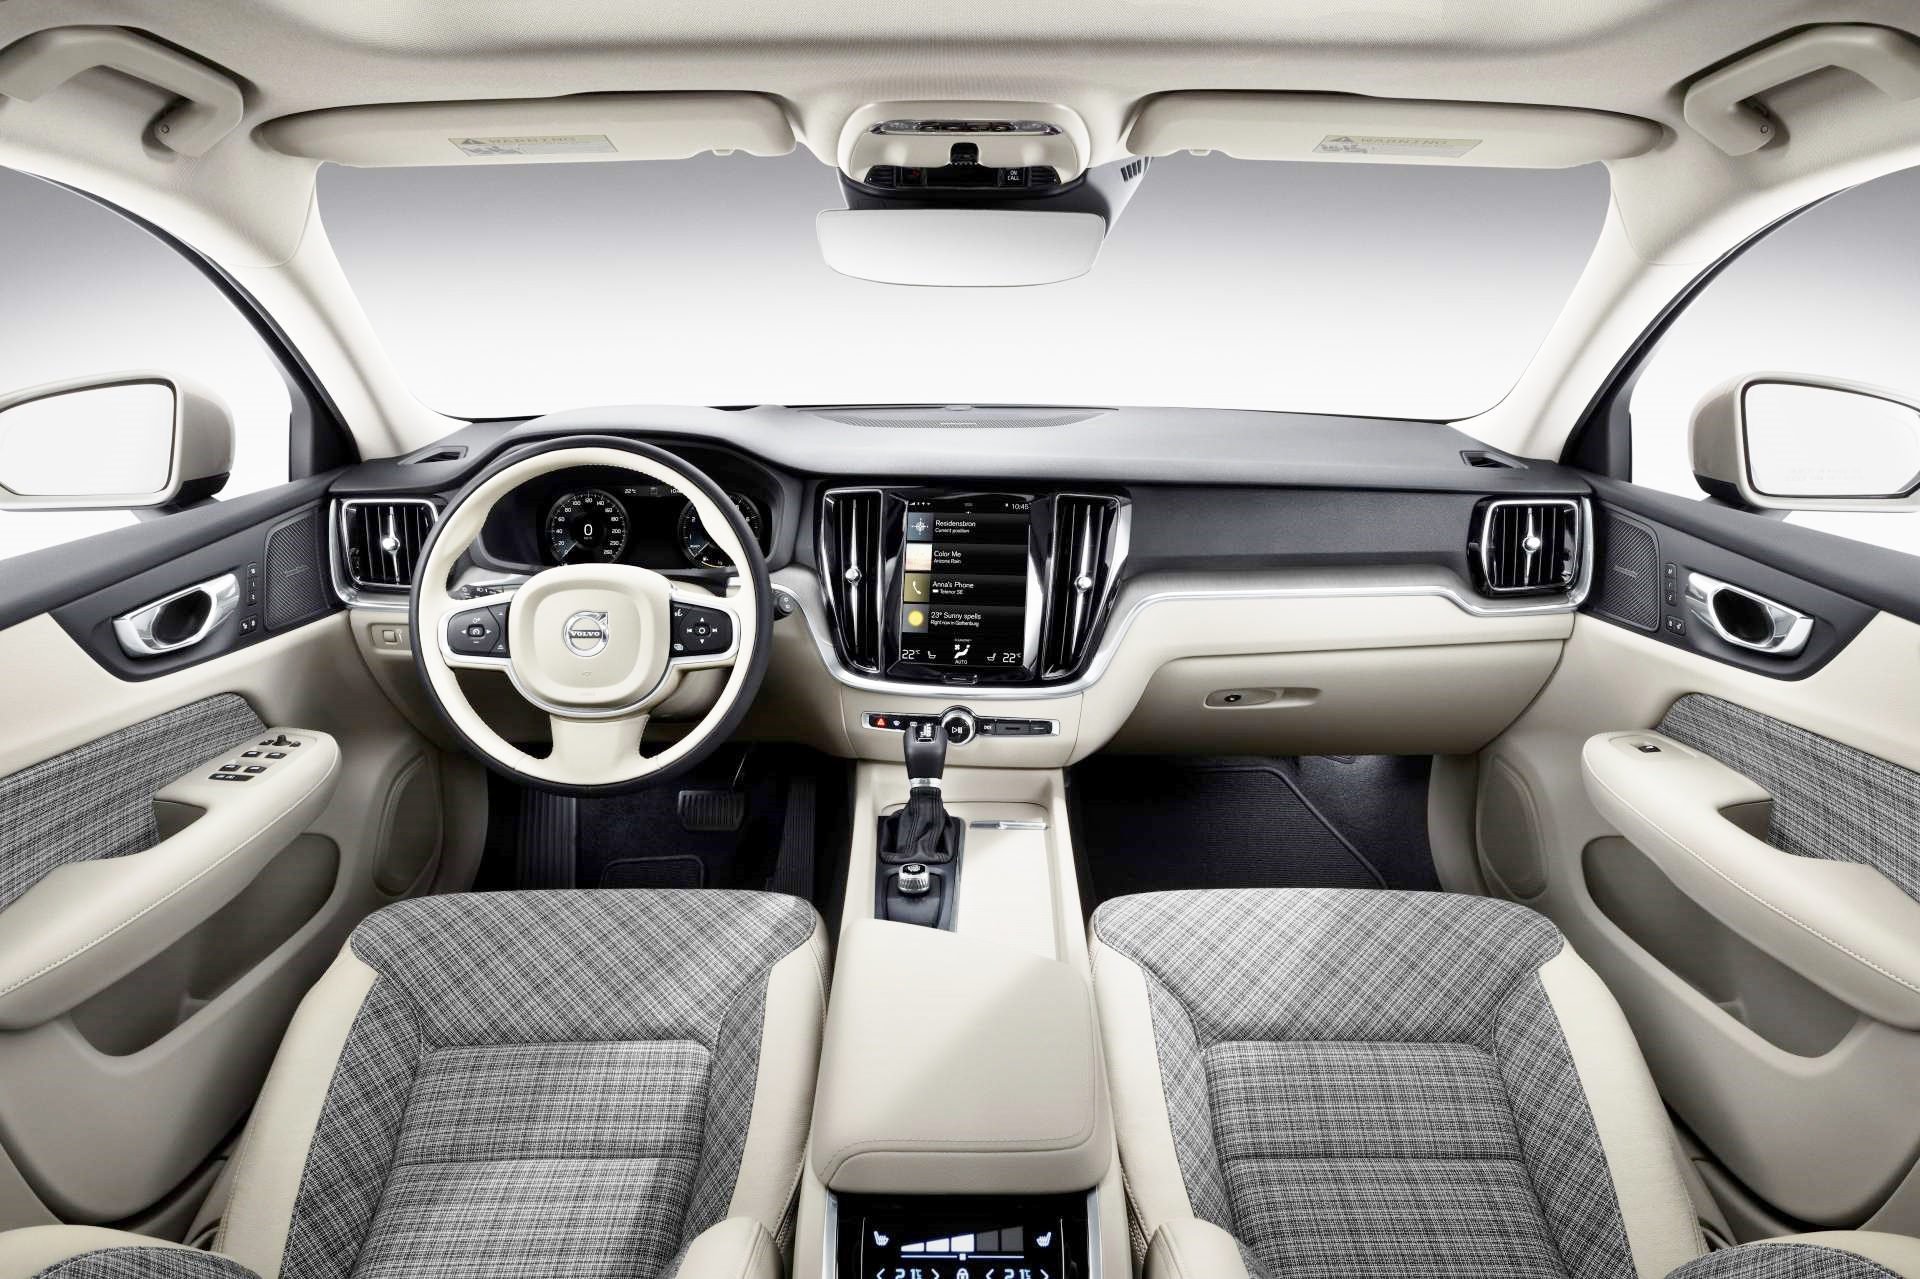 Volvo-V60-2019-lai-phe-voi-dong-co-tang-ap-2-0-L-anh-4